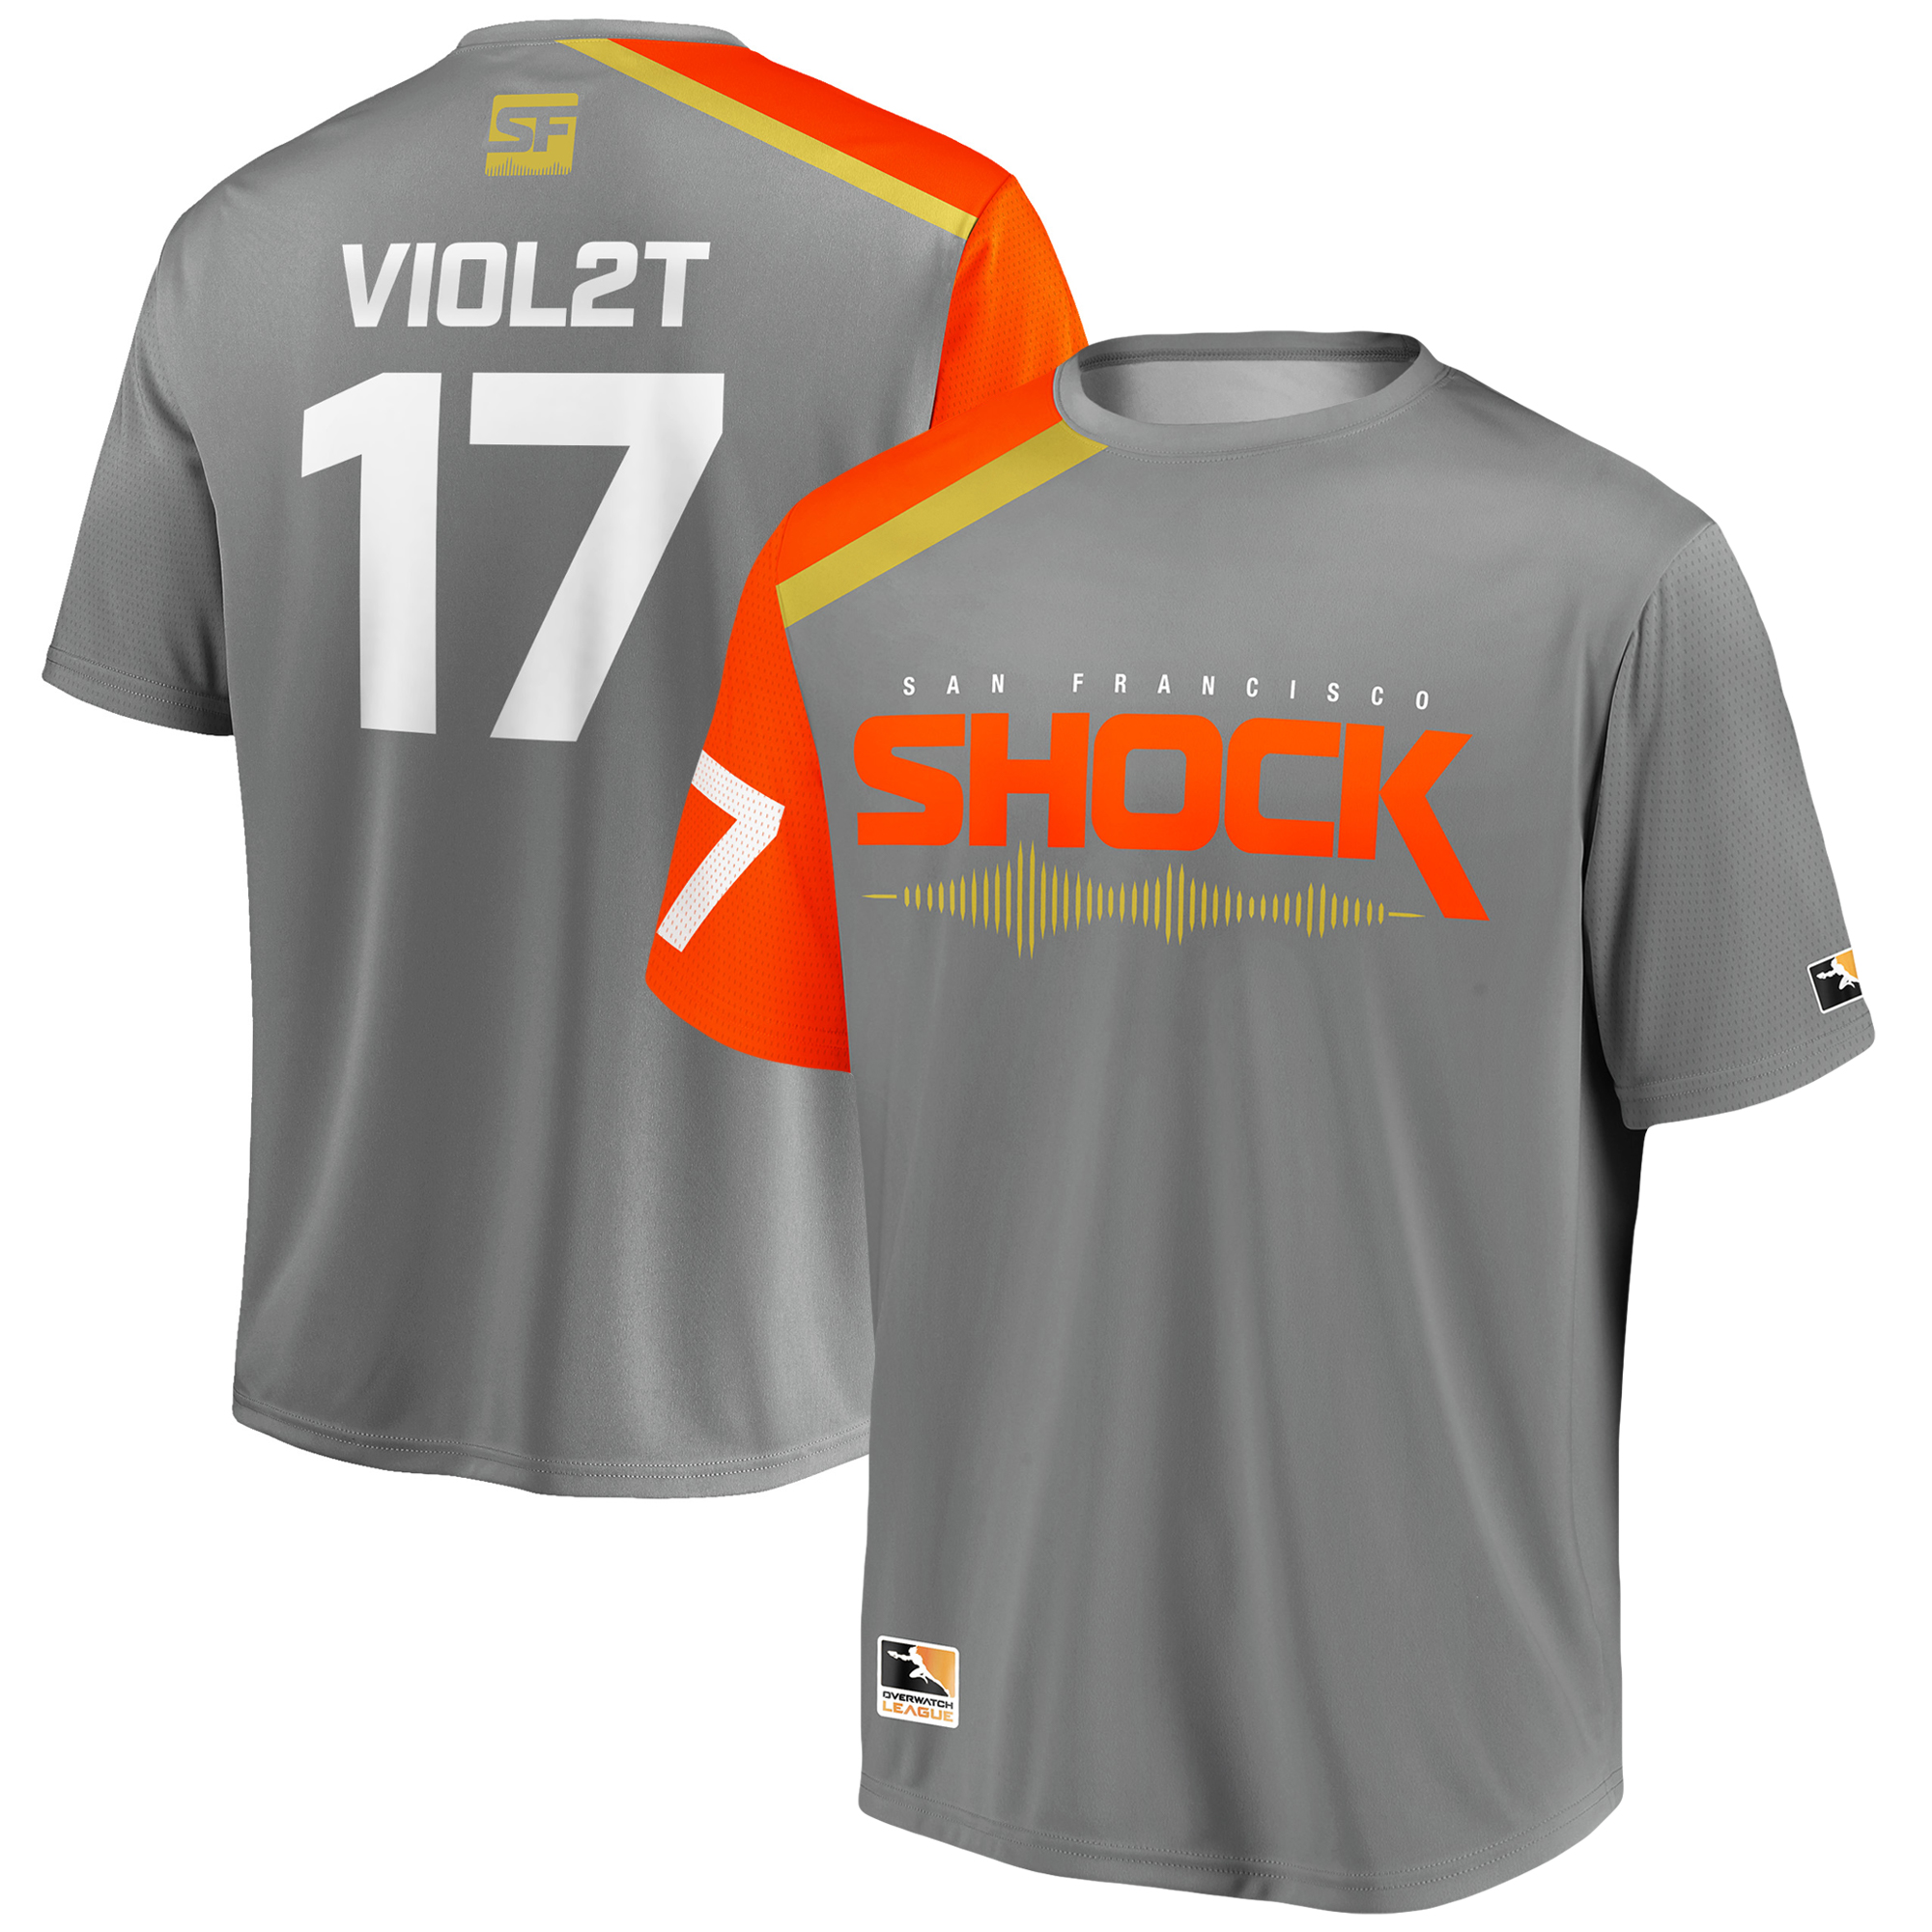 Viol2t San Francisco Shock Overwatch League Replica Home Jersey - Gray